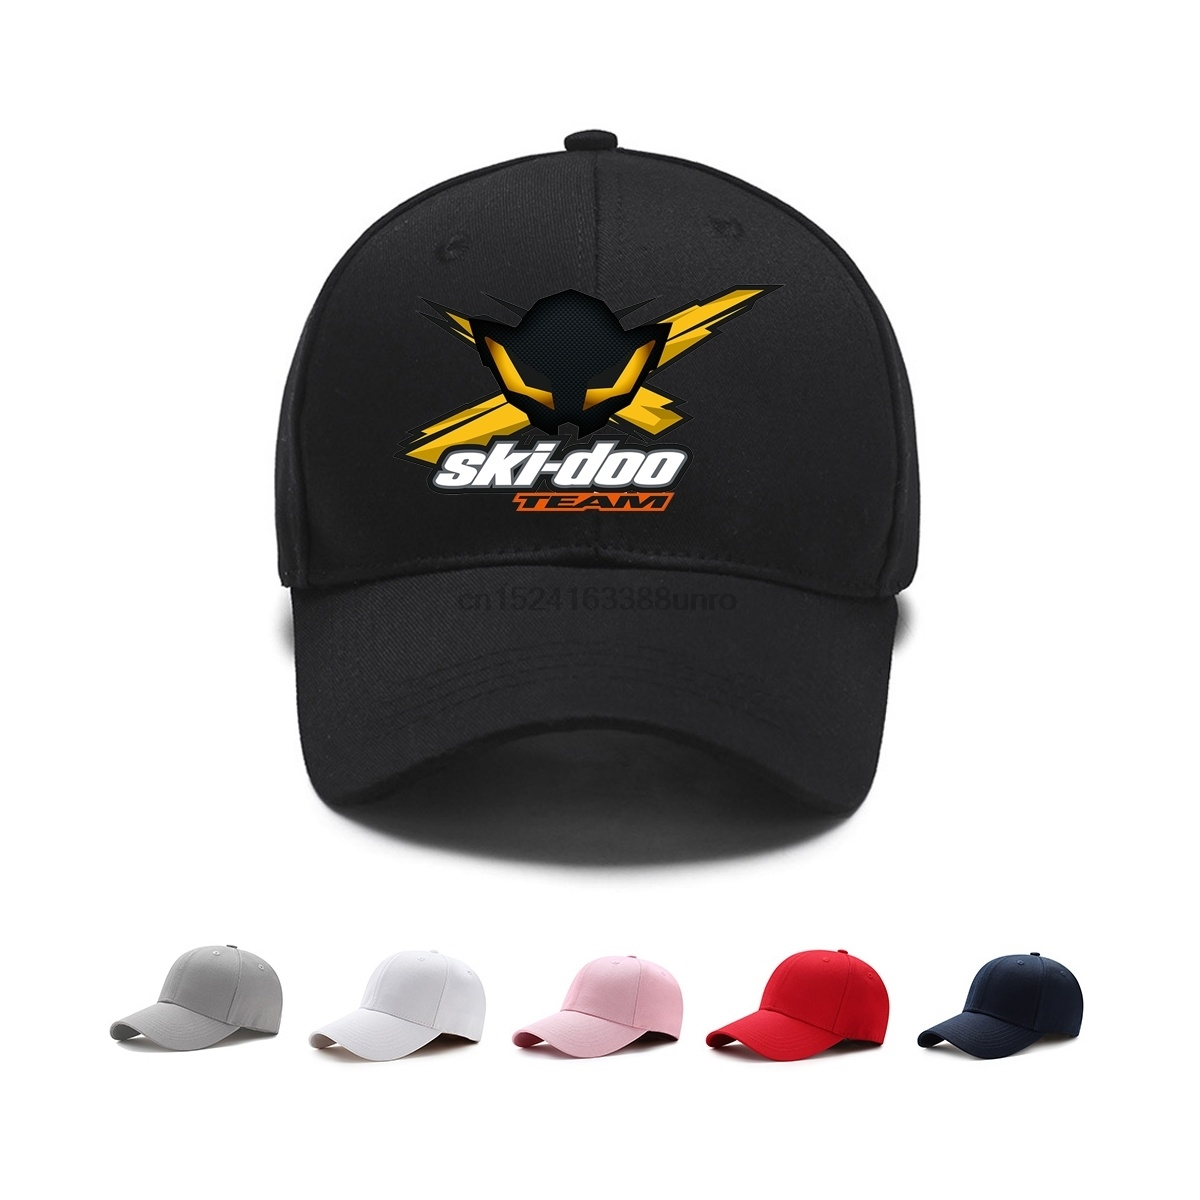 Classic Motoshop Ski-doo X-team Bee Baseball Cap Snapback Hat For Women Caps Summer Sun Snapback Hat Caps Sport Cap Casual Man To Be Highly Praised And Appreciated By The Consuming Public Men's Hats Apparel Accessories